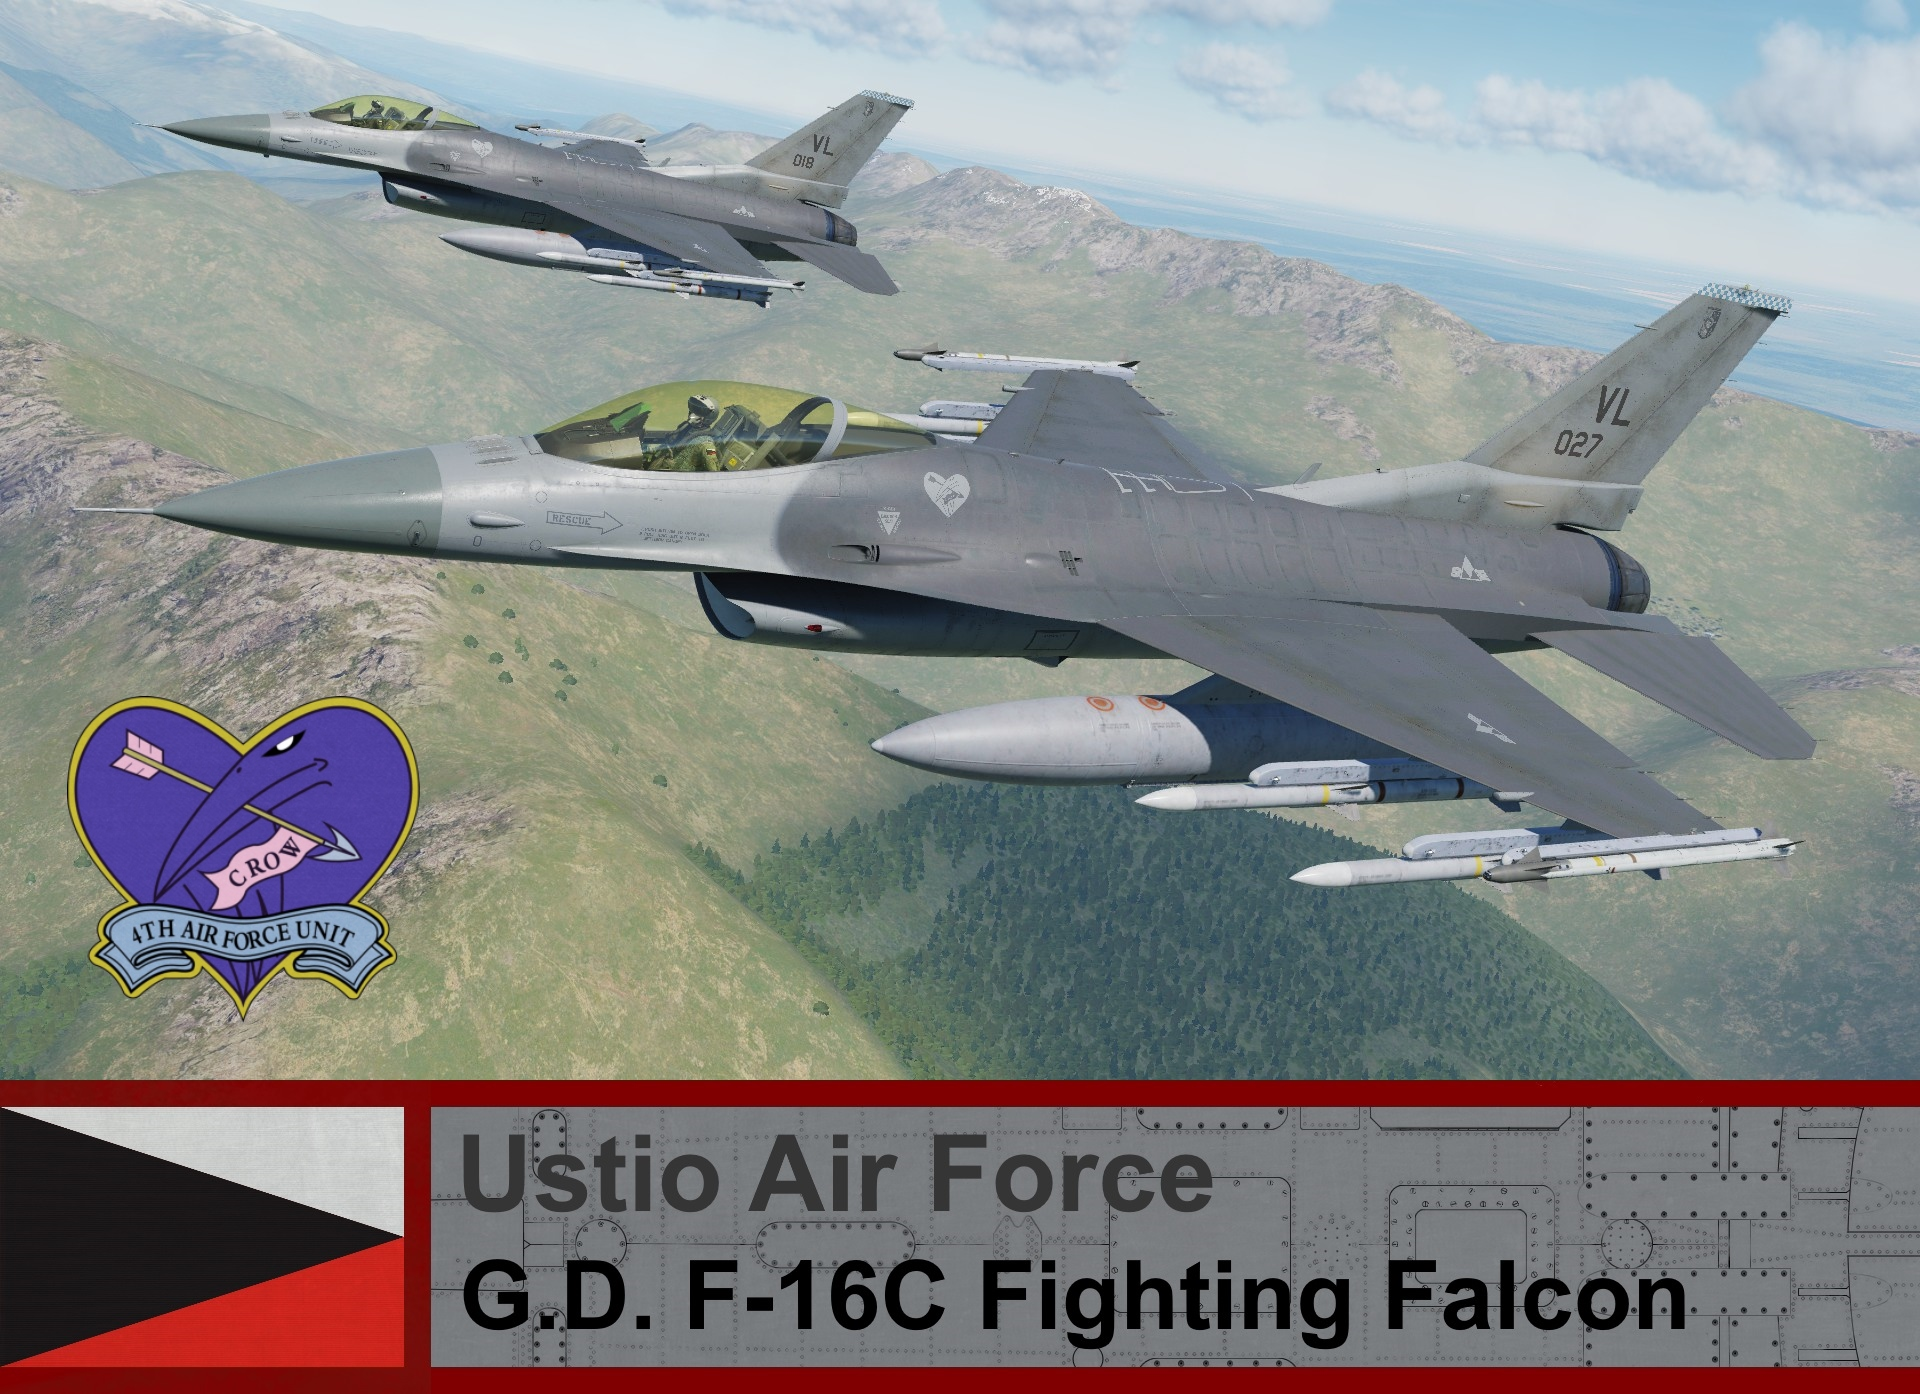 Ustio Air Force F-16C Block 50 - Ace Combat Zero, (04th AFU) Crow 1 & Crow 2